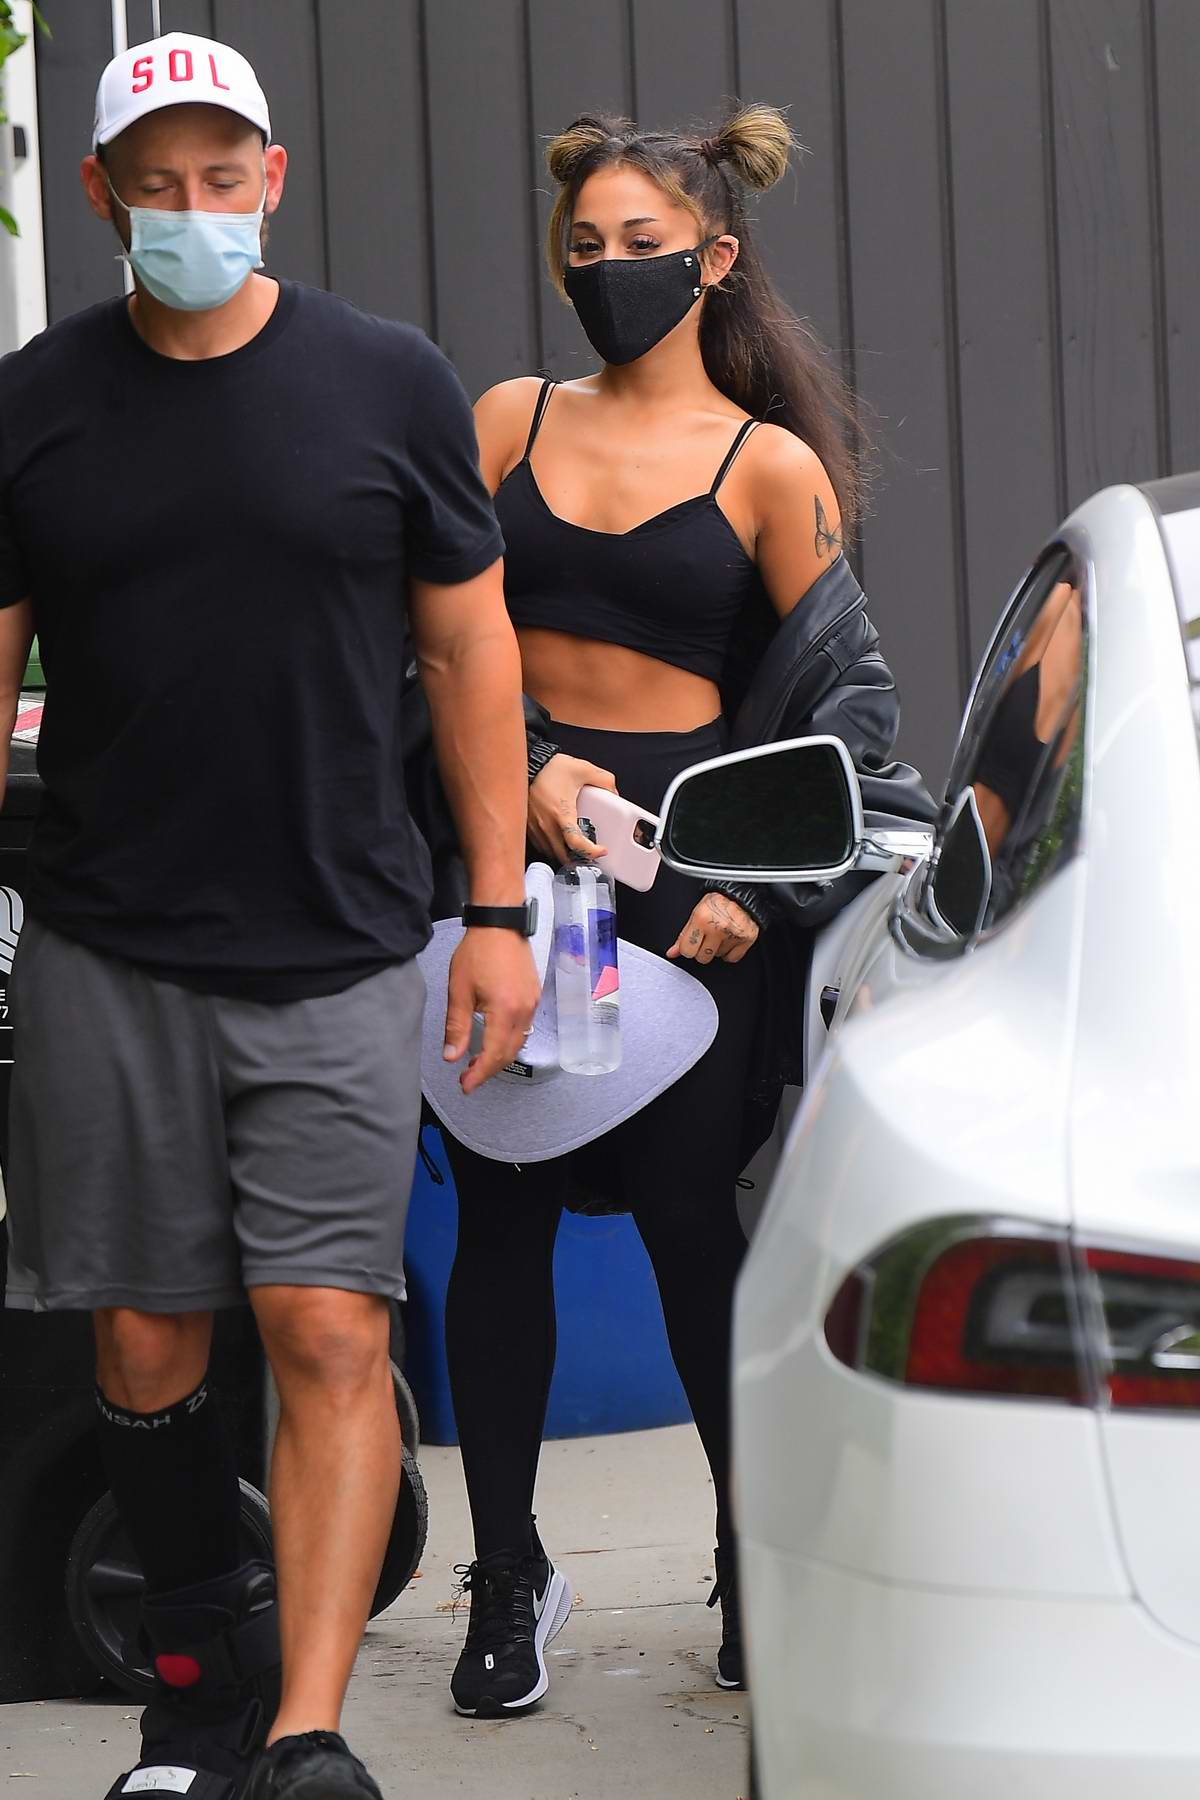 Ariana Grande shows off her fit figure in a crop top and leggings as she leaves the gym in Los Angeles